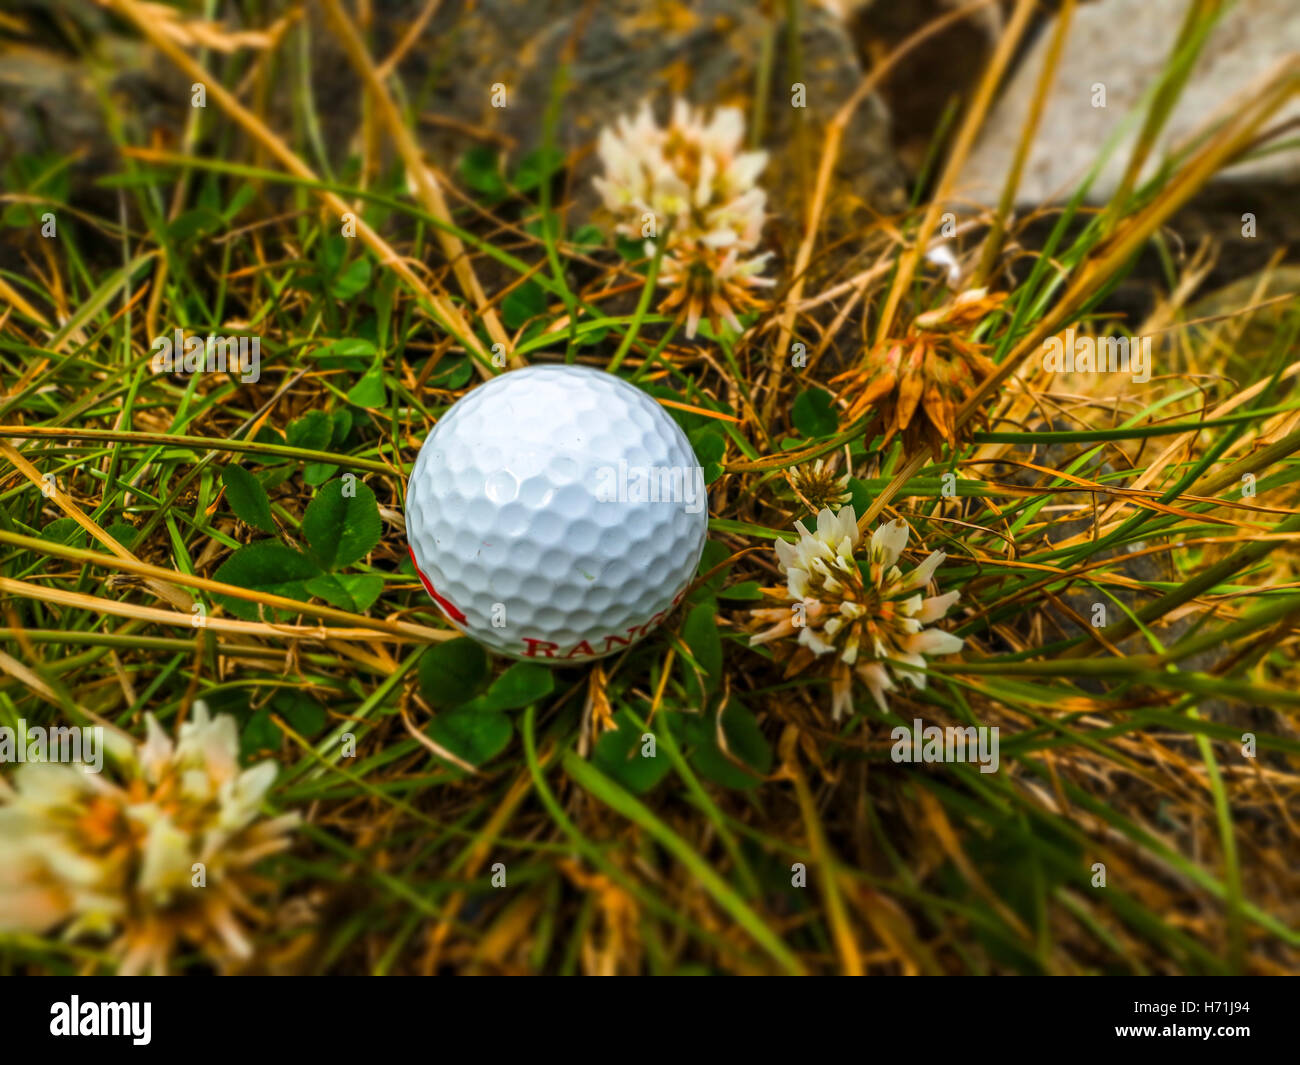 golf ball in the rough grass - Stock Image